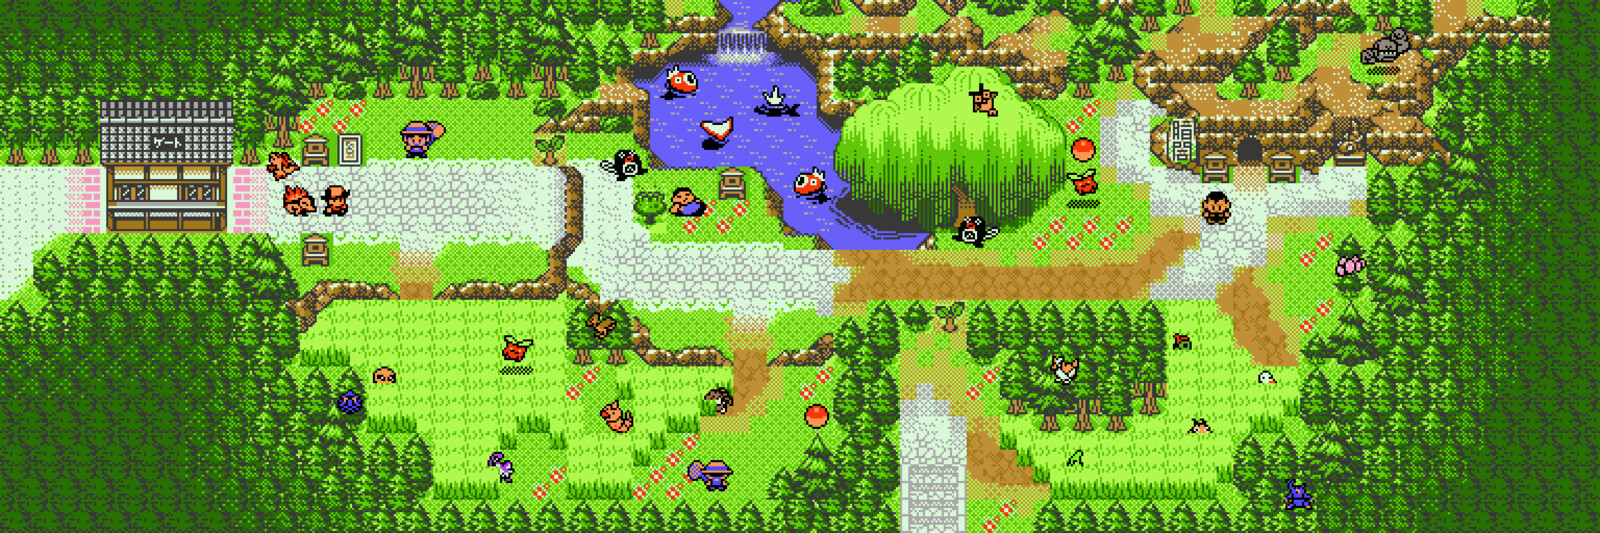 Route 31. Elaborated on the pond in the original game, and tried to make the cave entrance demand more attention.